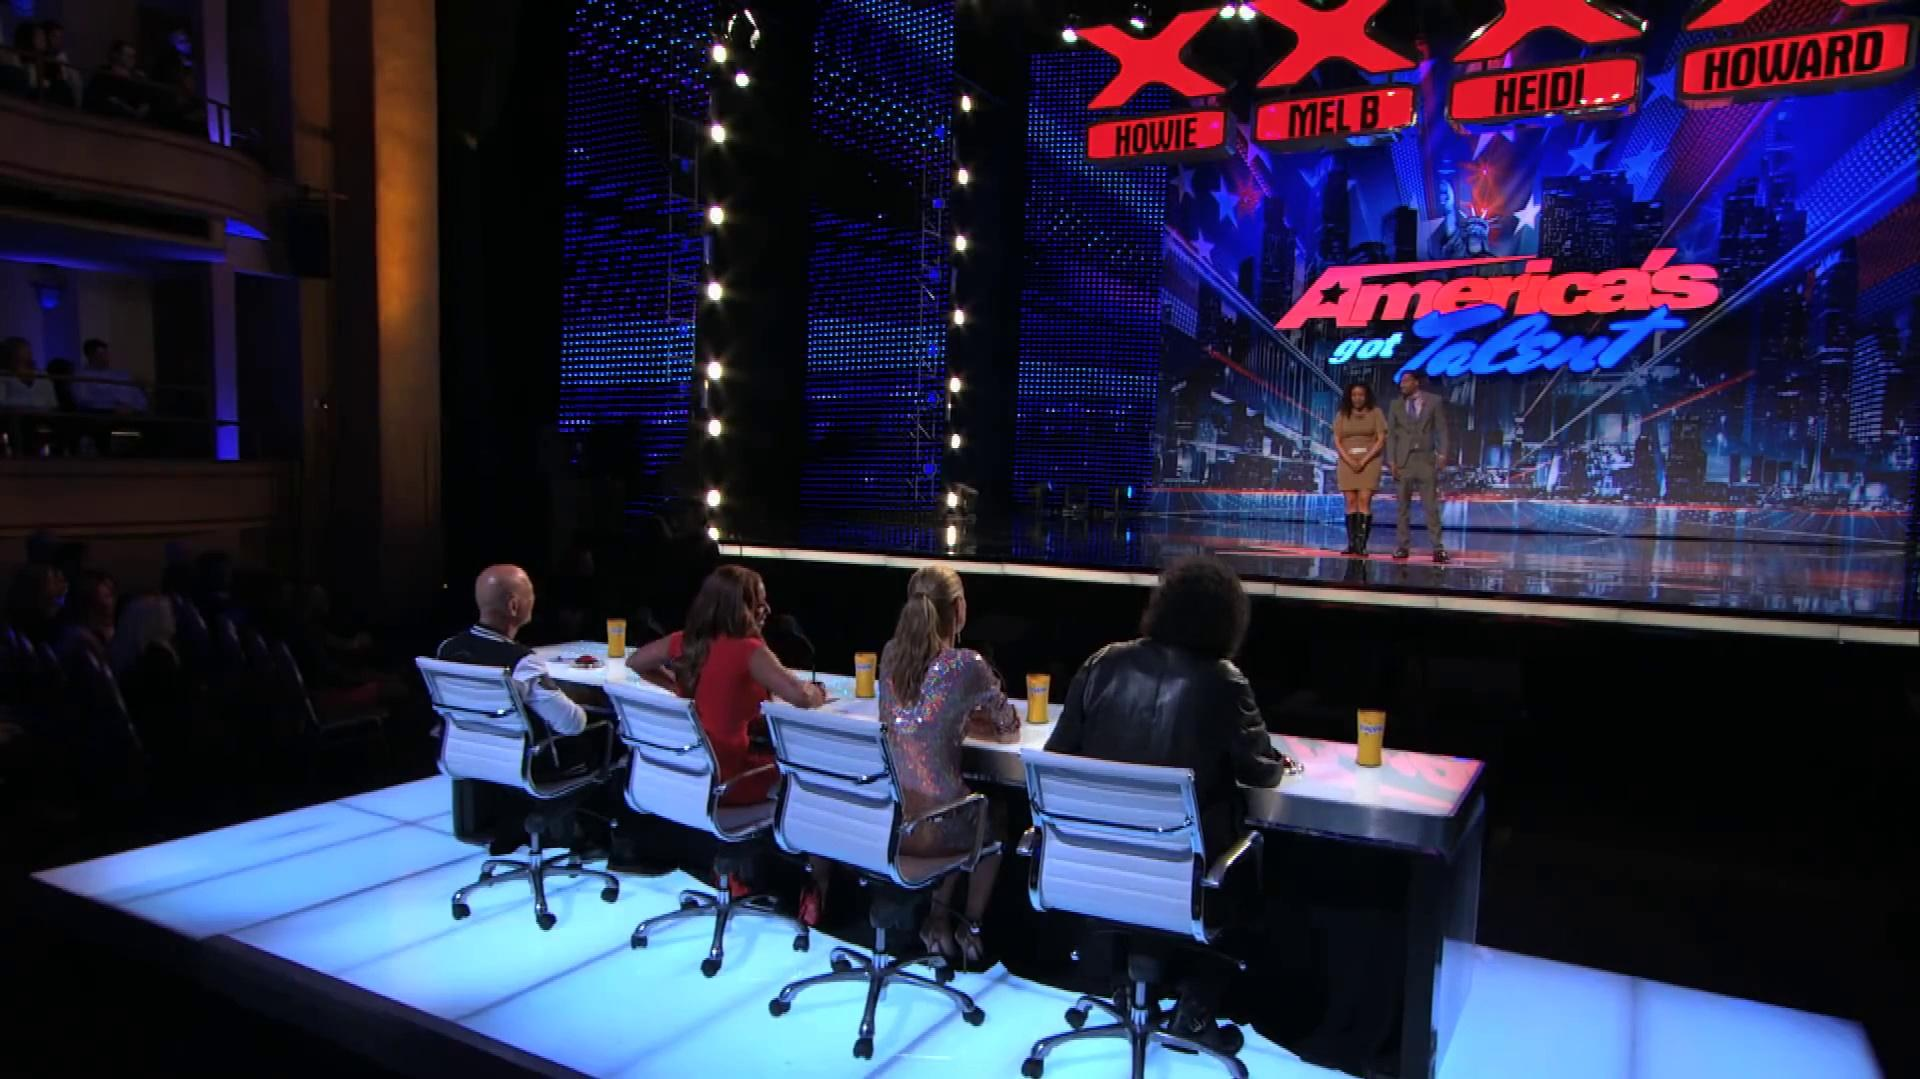 America's Got Talent 2013 - Season 8 - 088 - Secrete Emotion - Poetry Act Gets Nick Cannon to Grind on Her